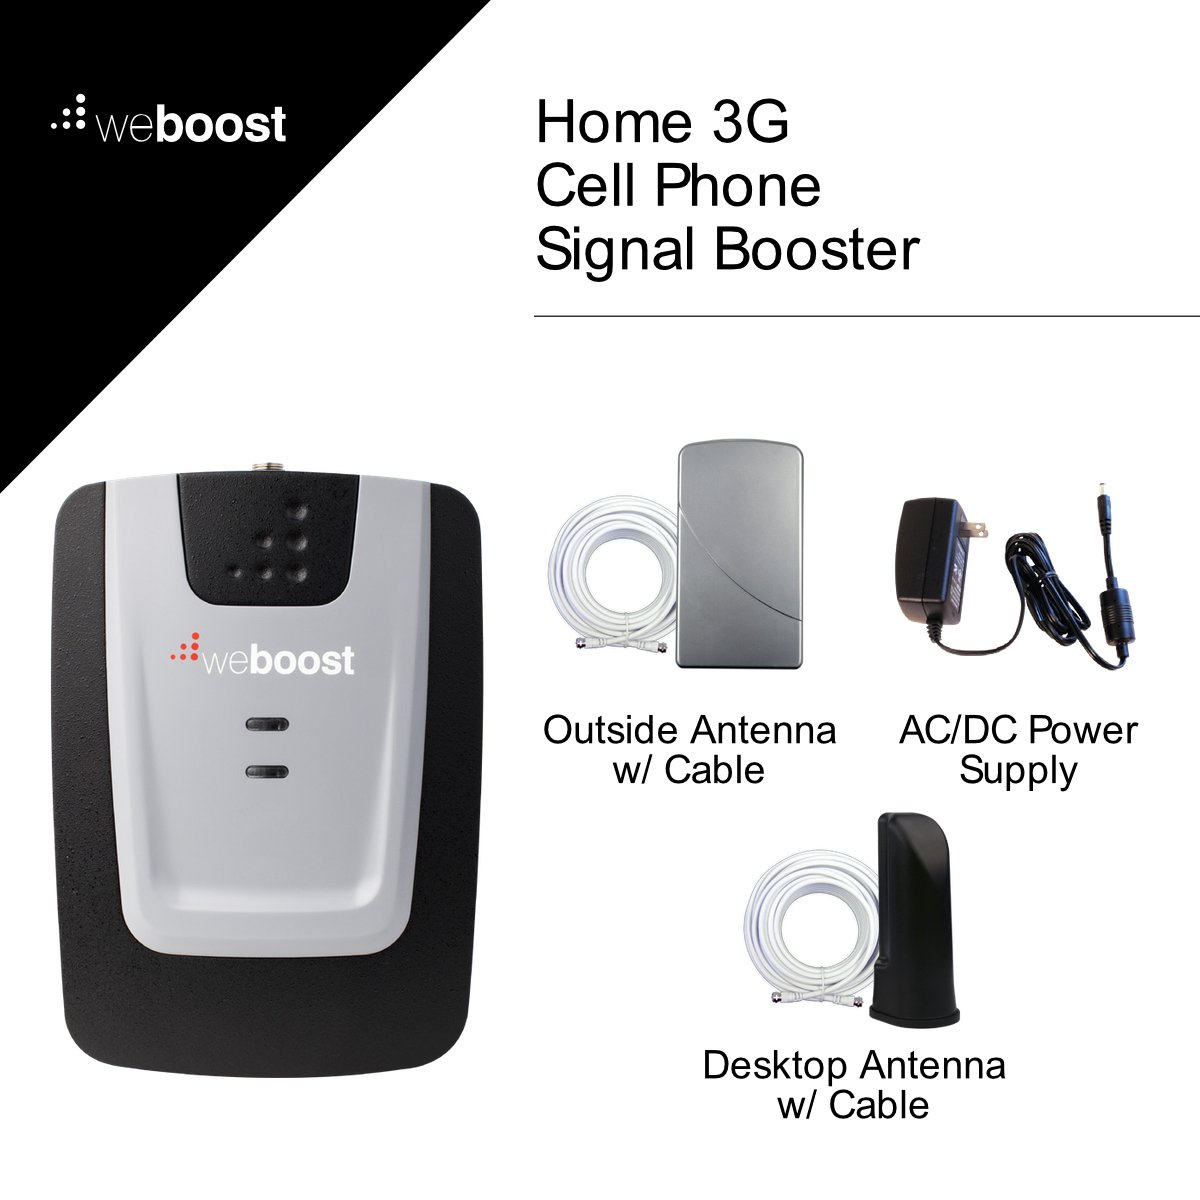 weBoost Home 3G Cell Phone Signal Booster Kit for Home and Office – Enhance Your Signal up to 32x. Can Cover up to 1500 sq ft or Small Home. For Multiple Devices and Users. by weBoost (Image #2)